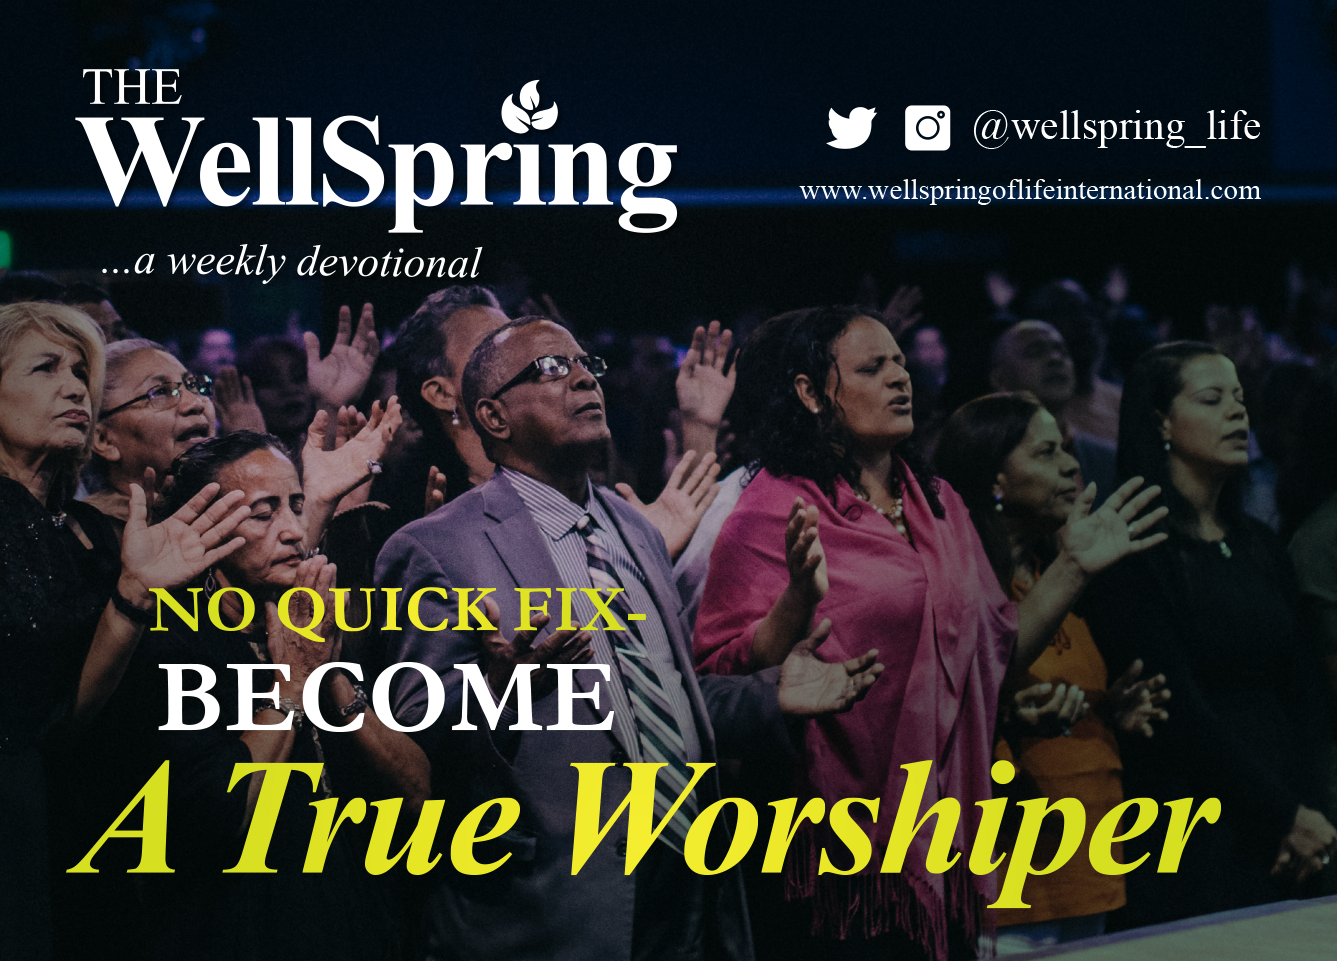 No Quick Fix- Become a True Worshiper post thumbnail